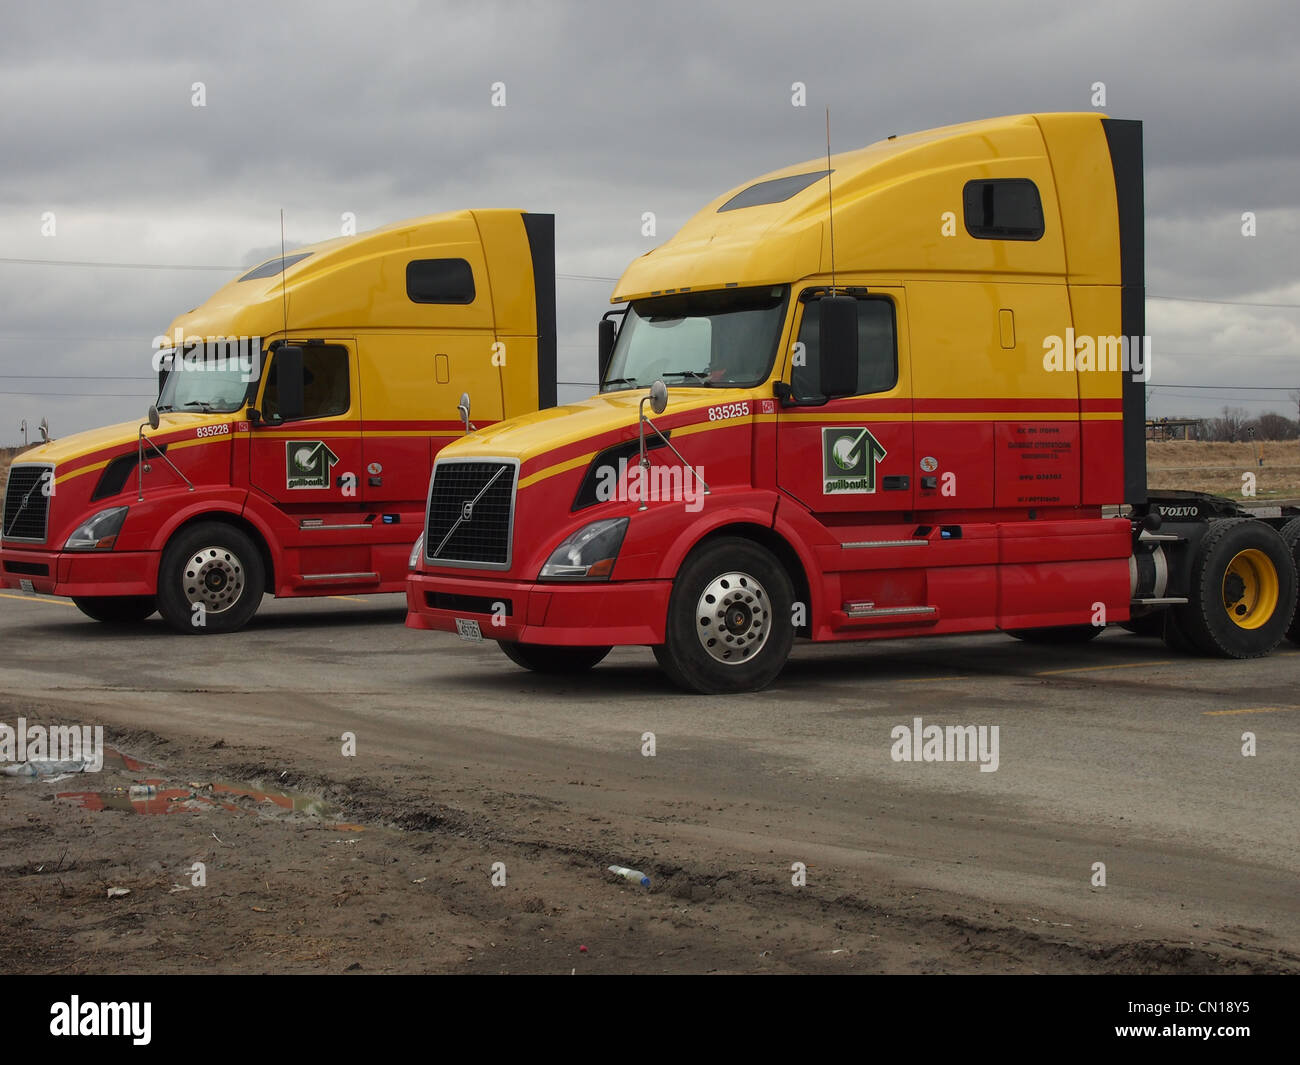 Front cab of yellow and red transport trucks - Stock Image